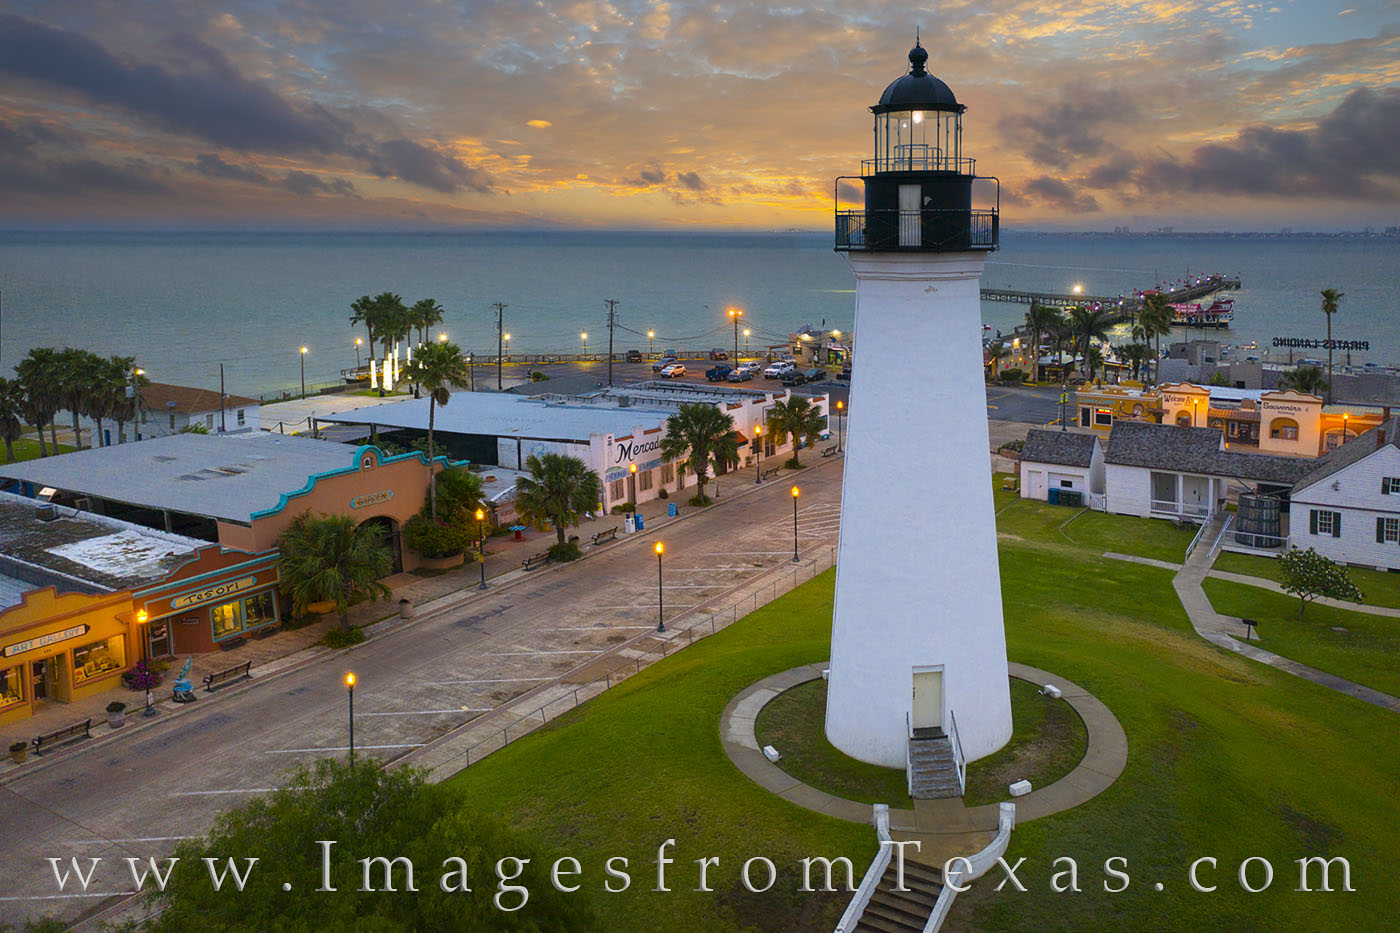 port isabel, lighthouse, south padre island, texas coast, sunrise, historical marker, historical registrar, morning, drone, aerial, photo